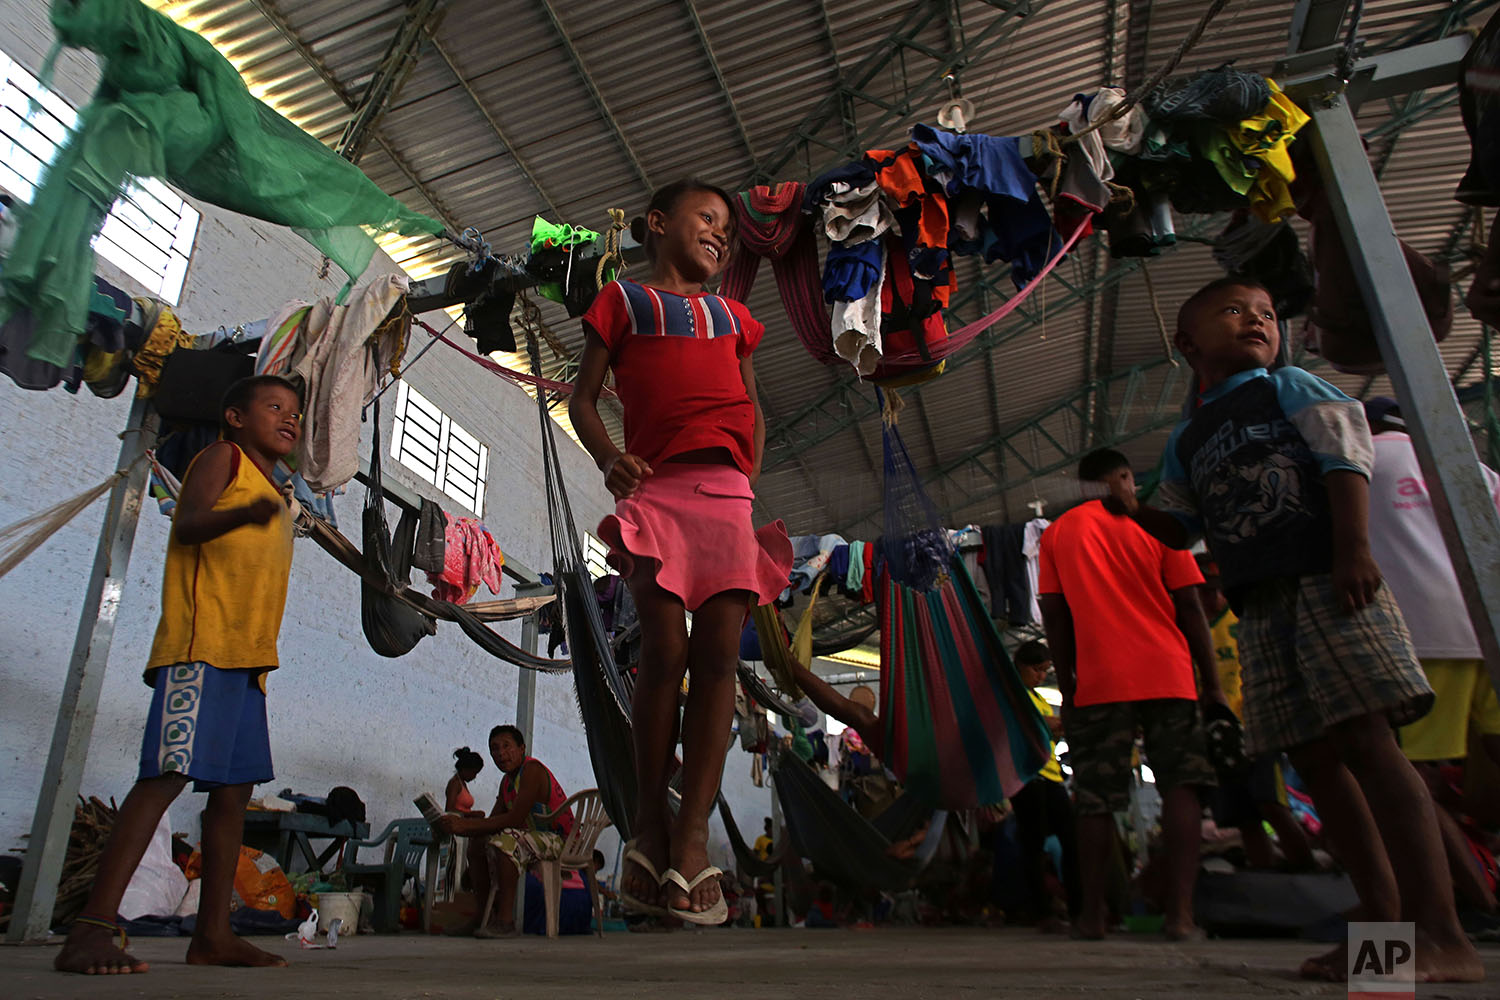 In this March 10, 2018 photo, Warao children from Venezuela play in a shelter, in Pacaraima, Brazil. (AP Photo/Eraldo Peres)